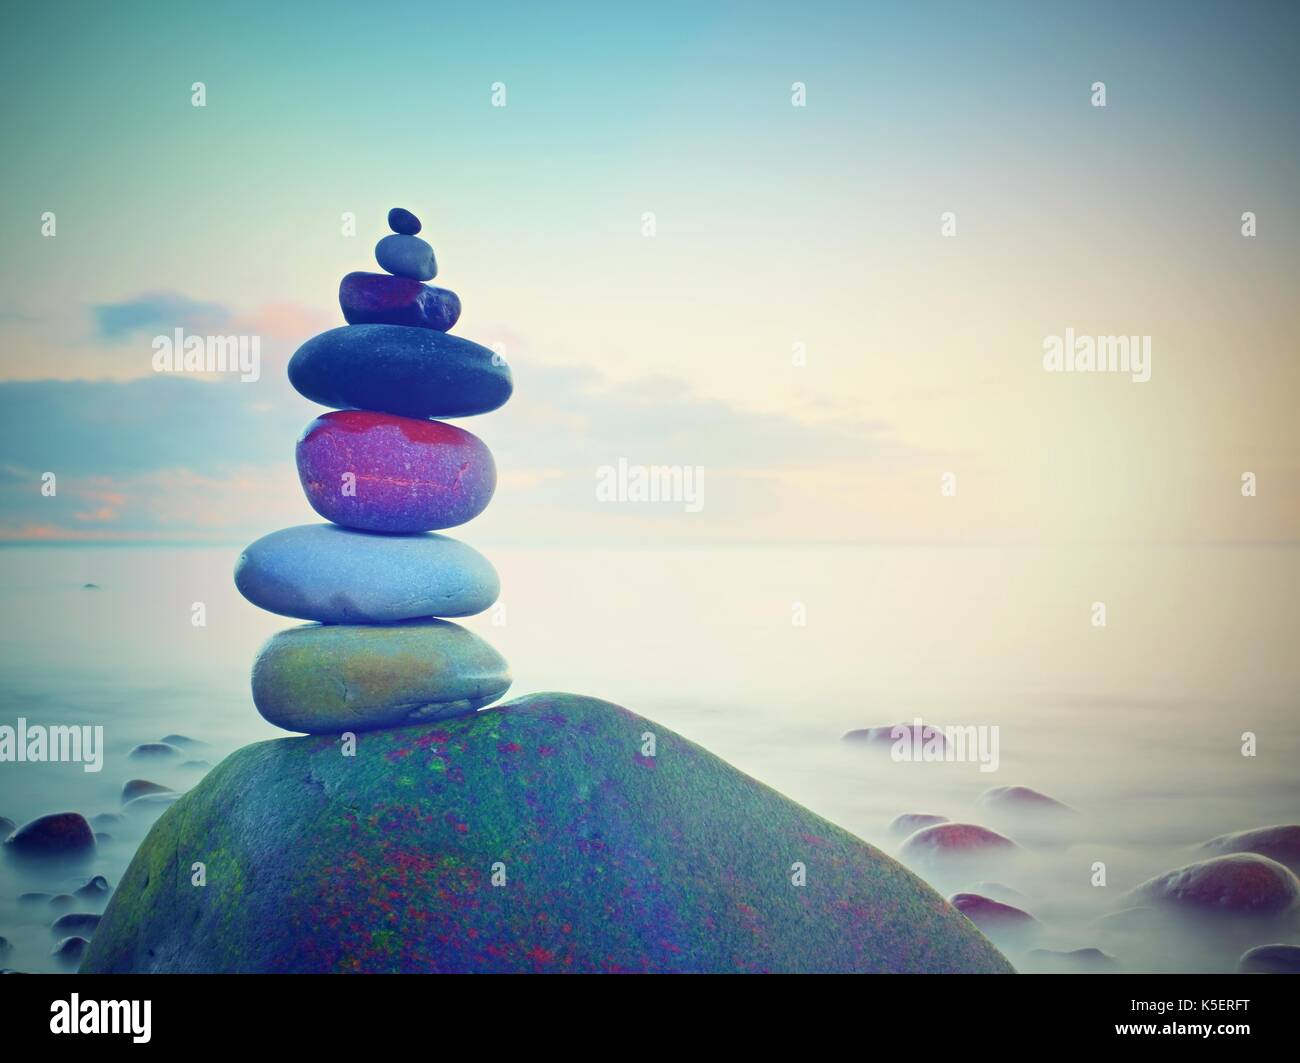 Balance of pebbles against the background of blurred sea.  Smooth atmosphere on hotel beach - Stock Image